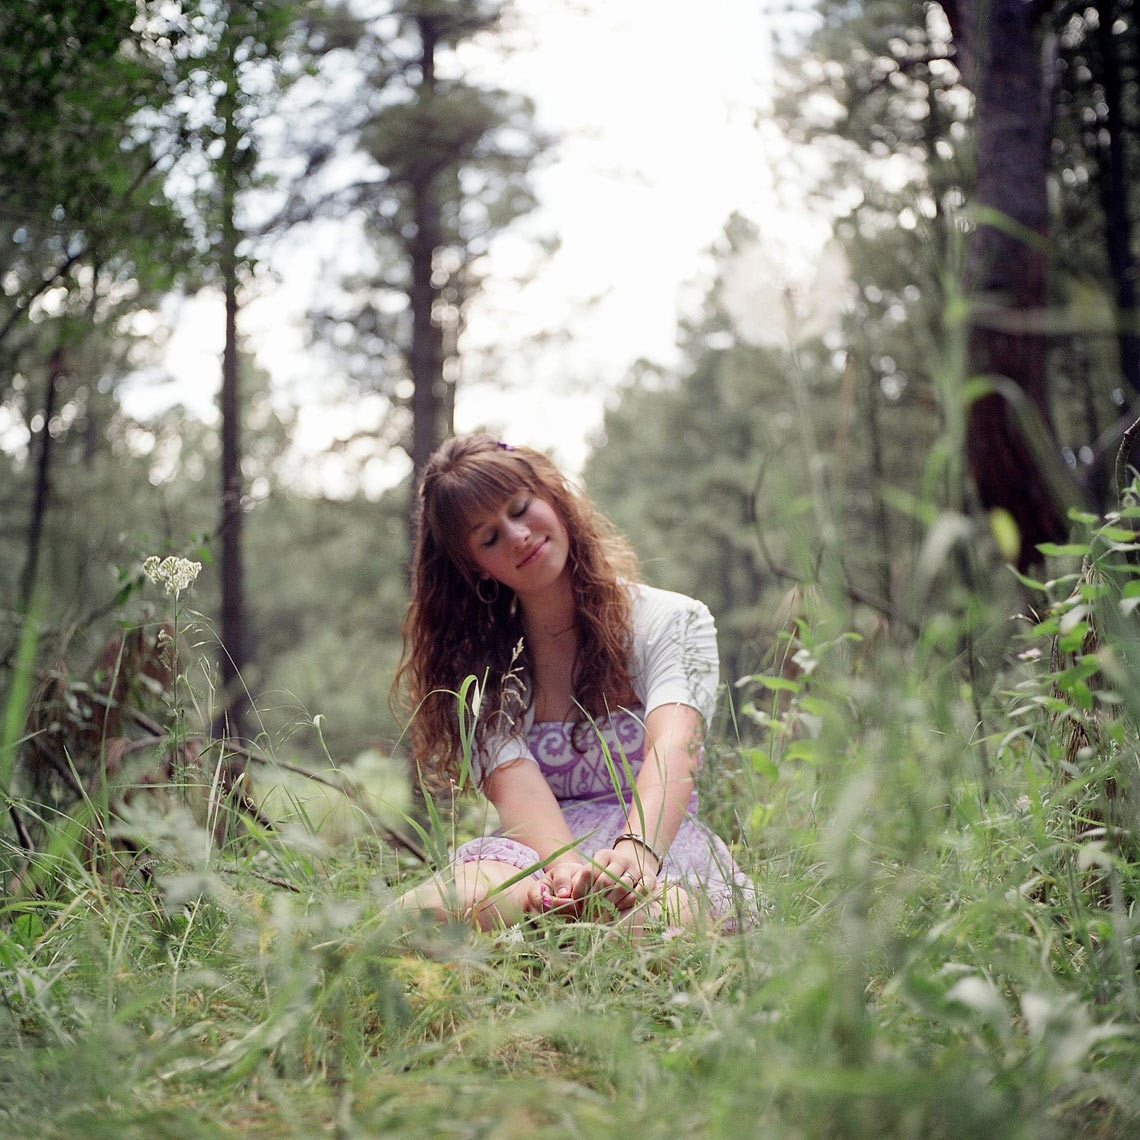 Women in Medium Format Film